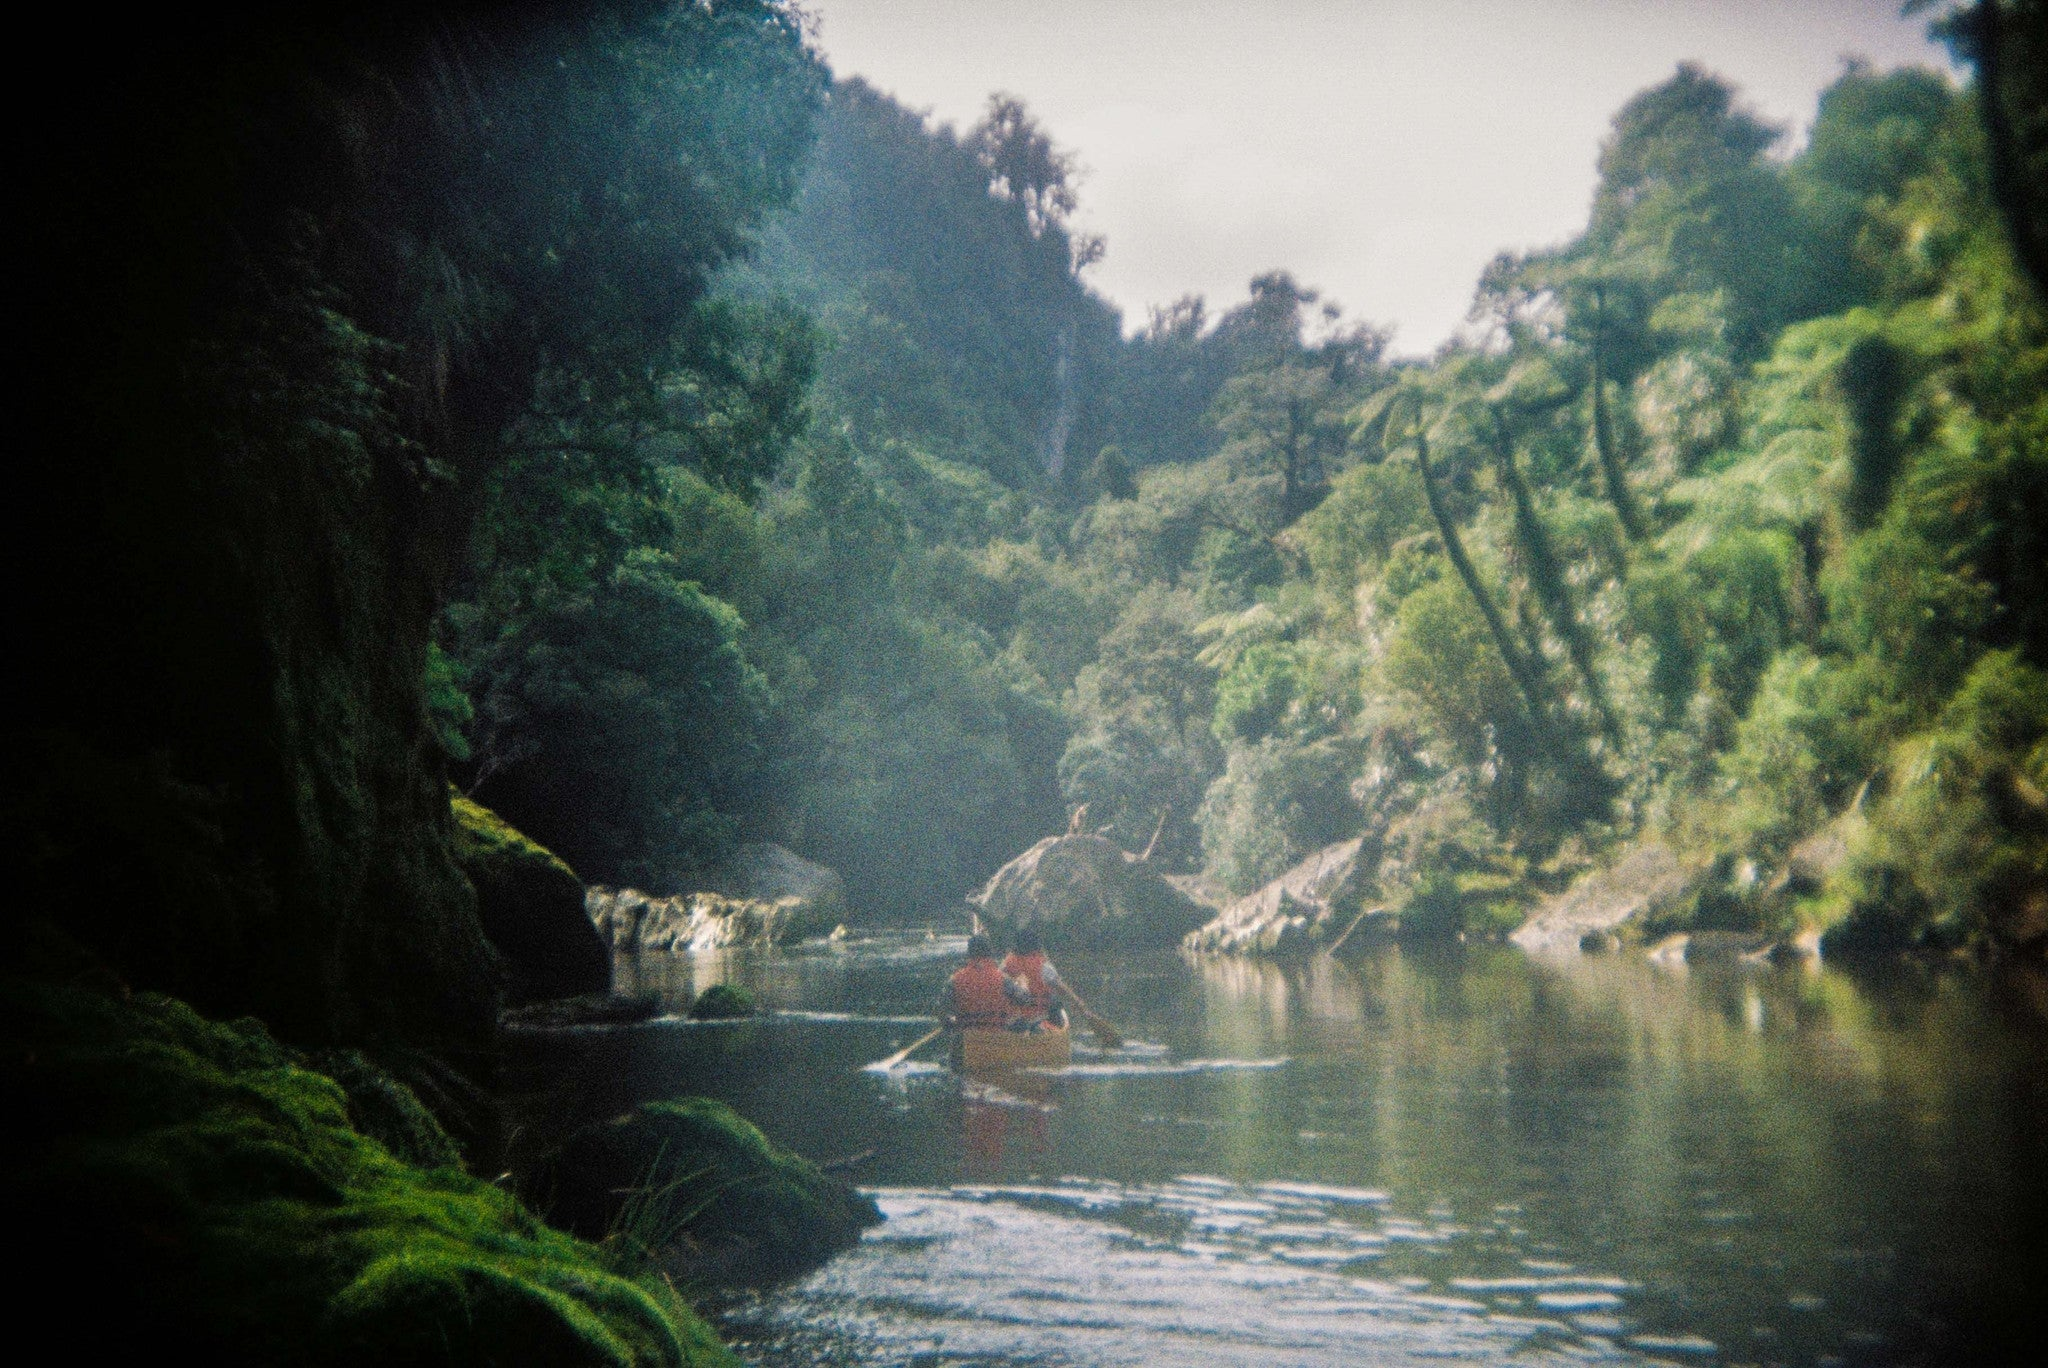 Canoeing the Rata River New Zealand - Sanborn Canoe Scout Field Log